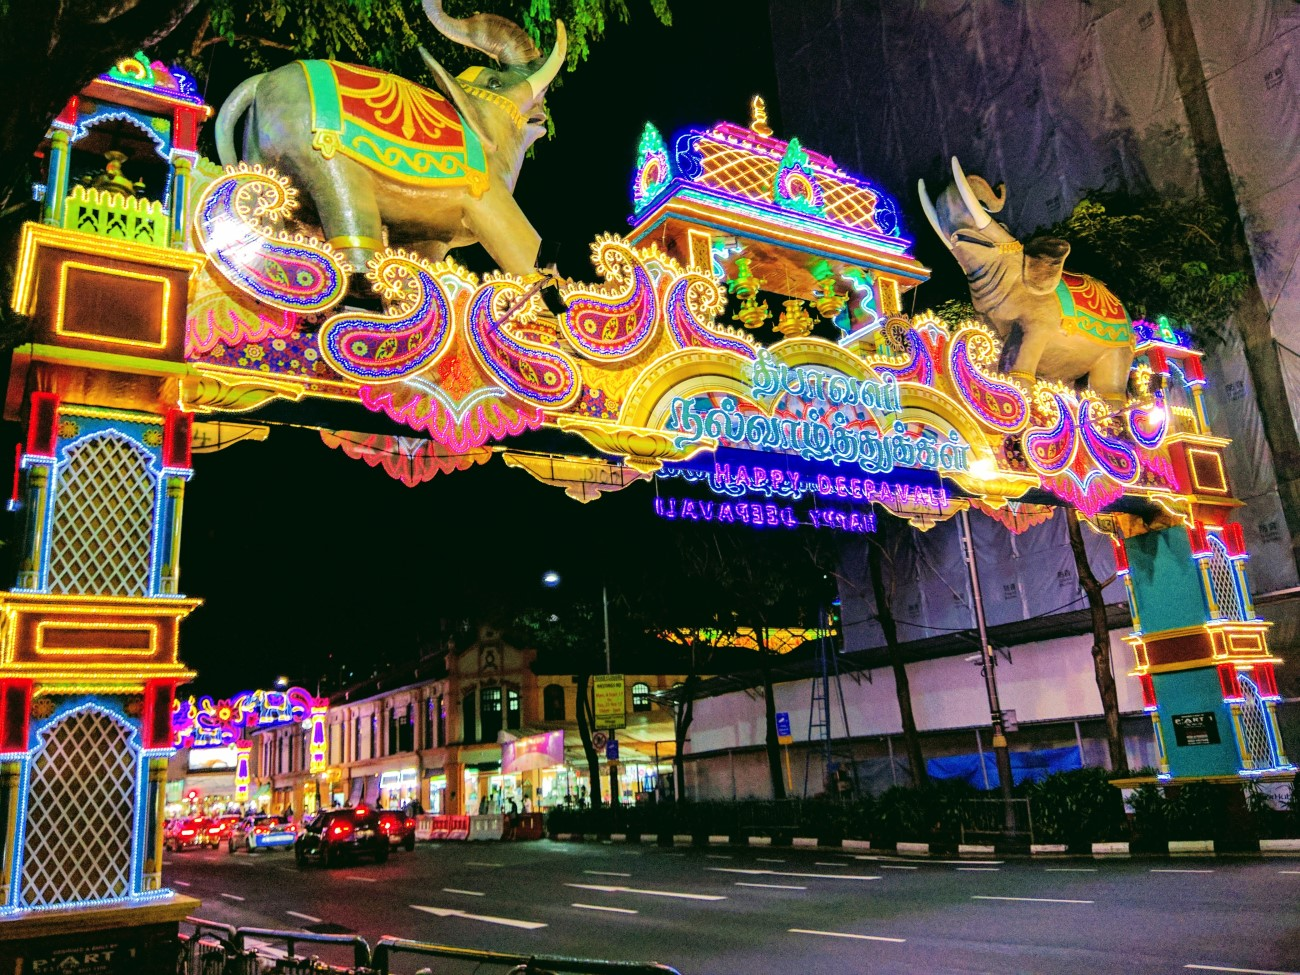 Singapore celebrates Diwali (an Indian festival)